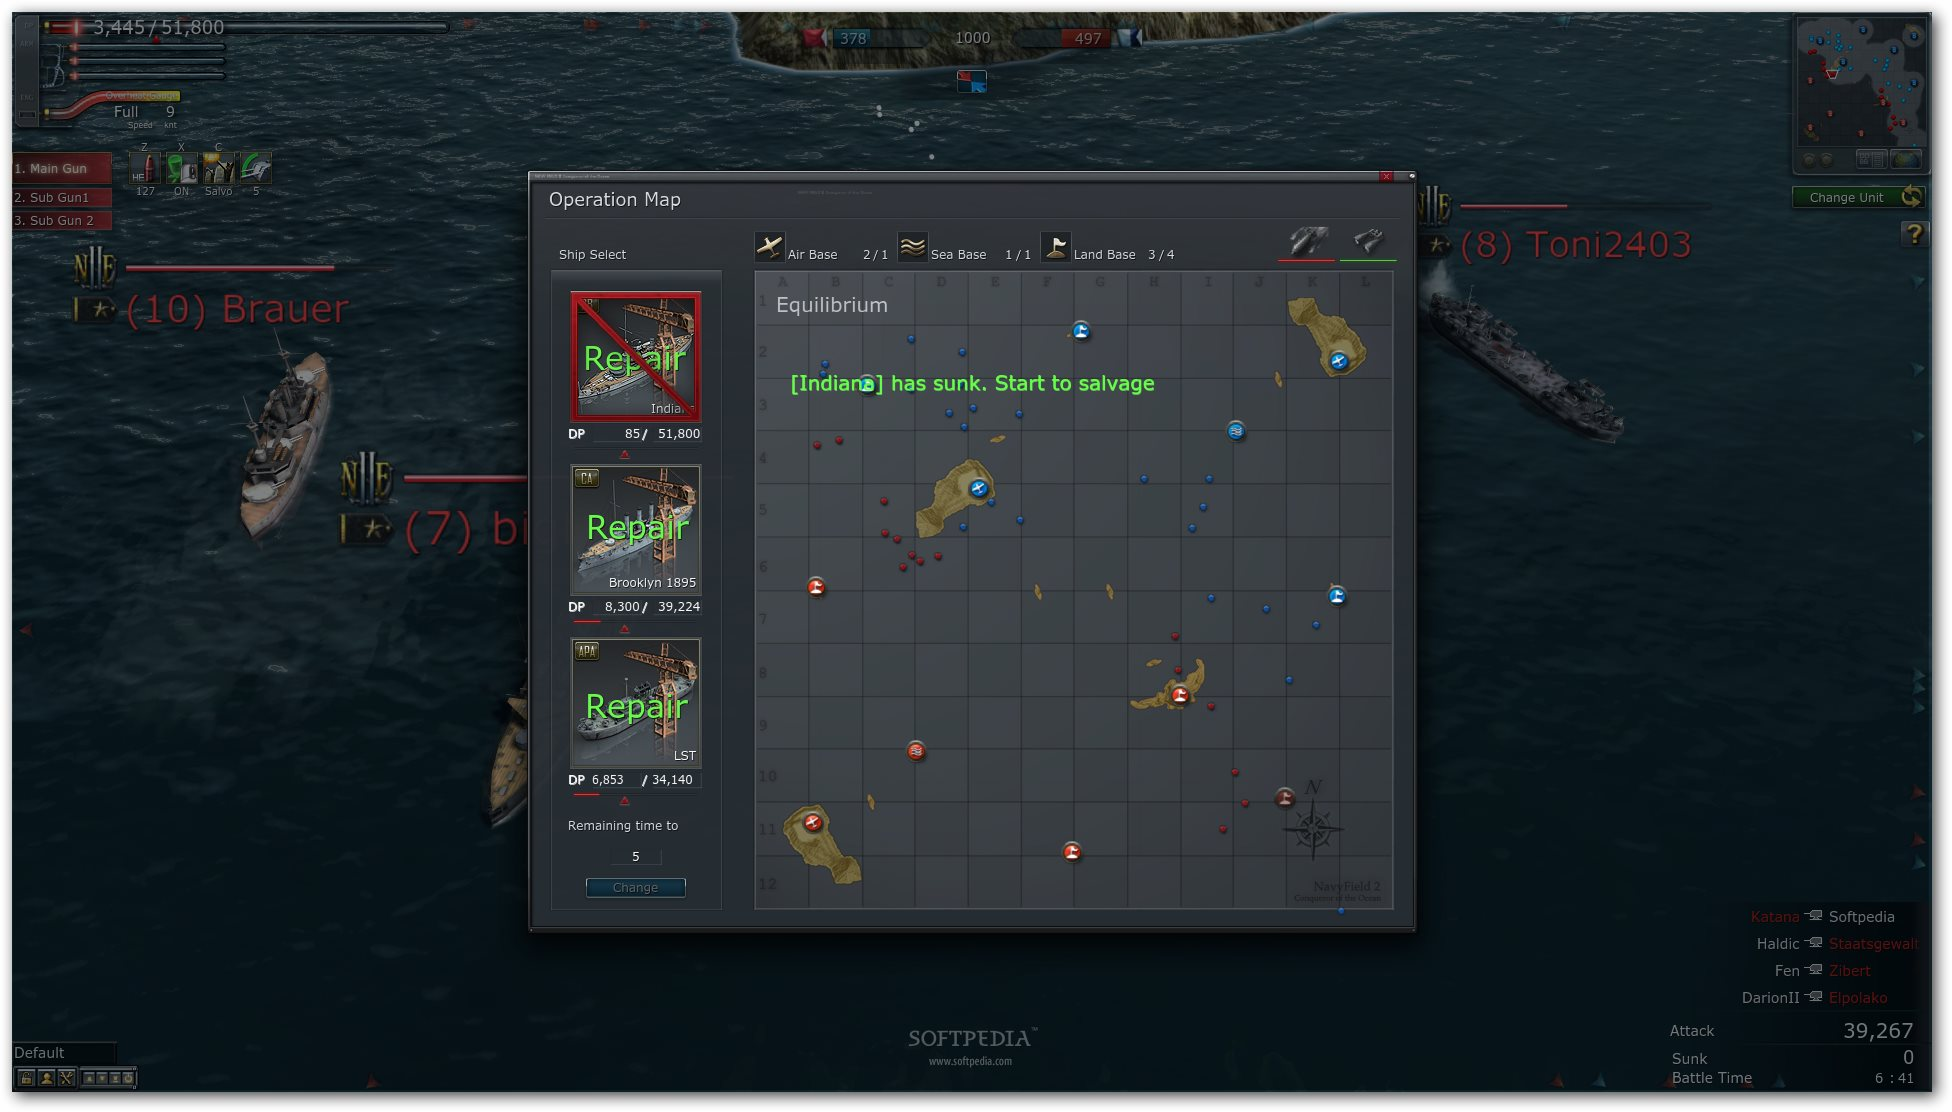 Download navy field 2 client open beta softpedia for Nexon client